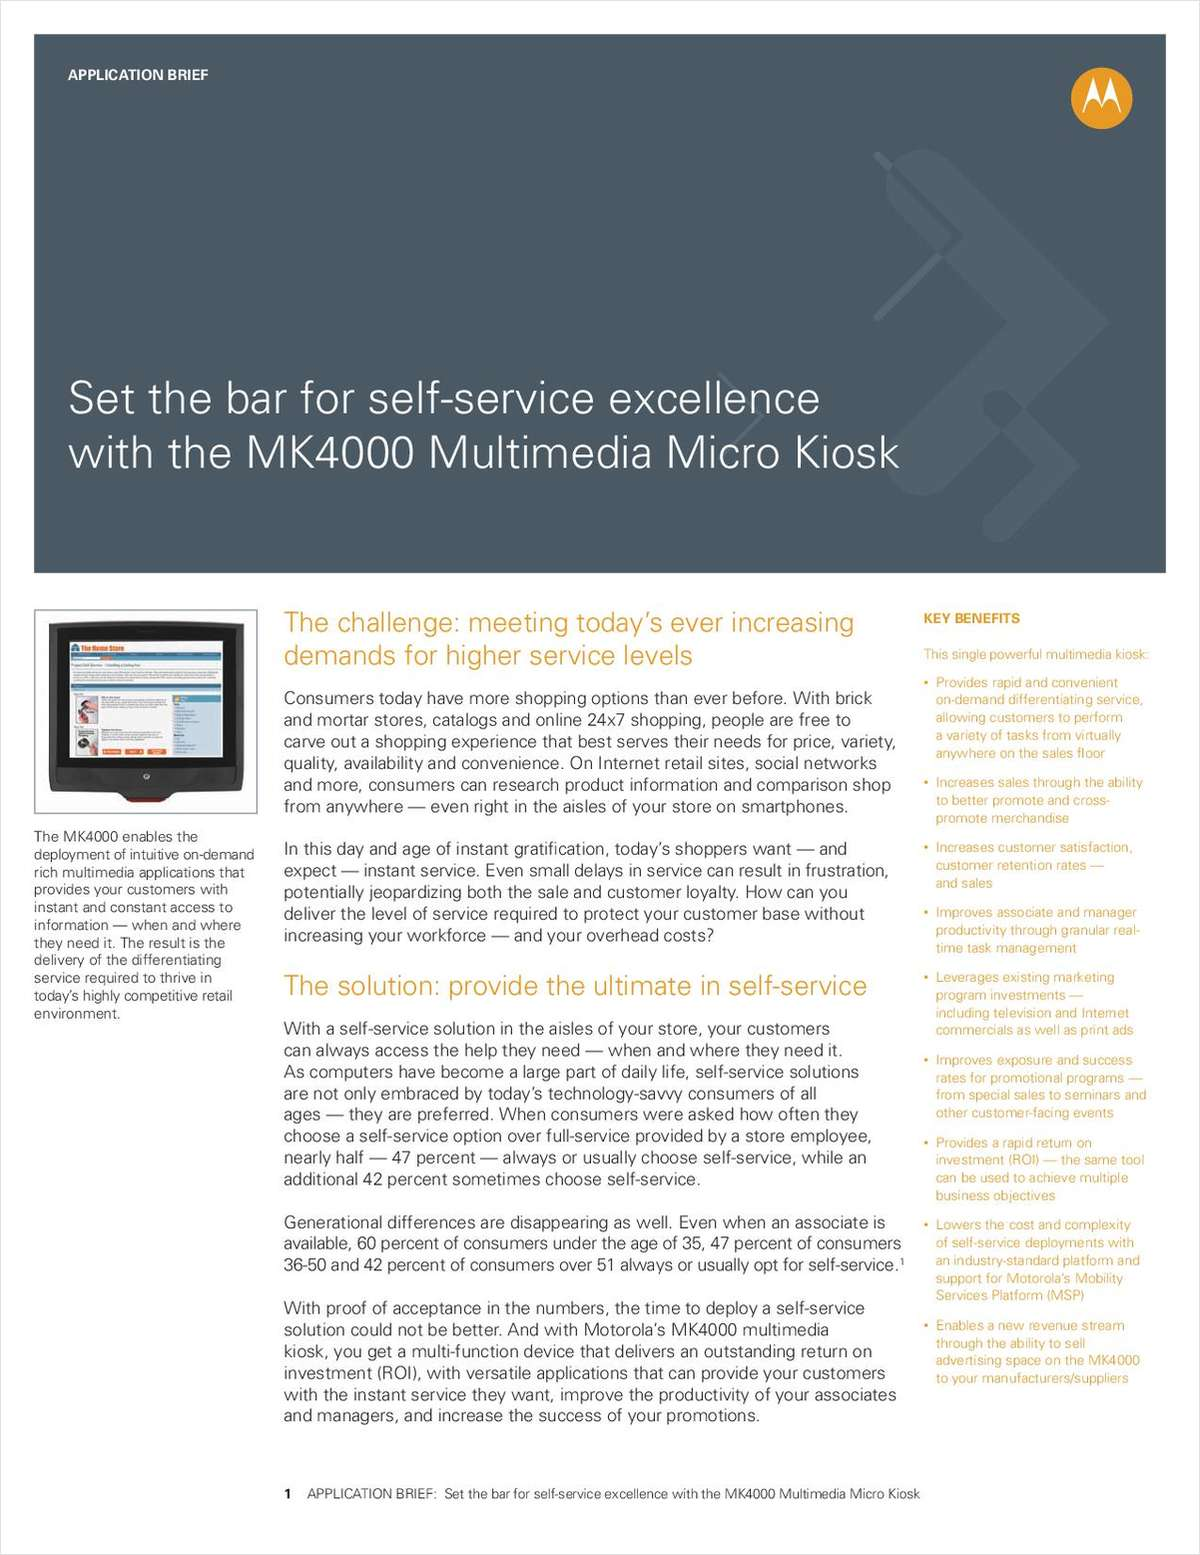 Set the Bar for Self-Service Excellence